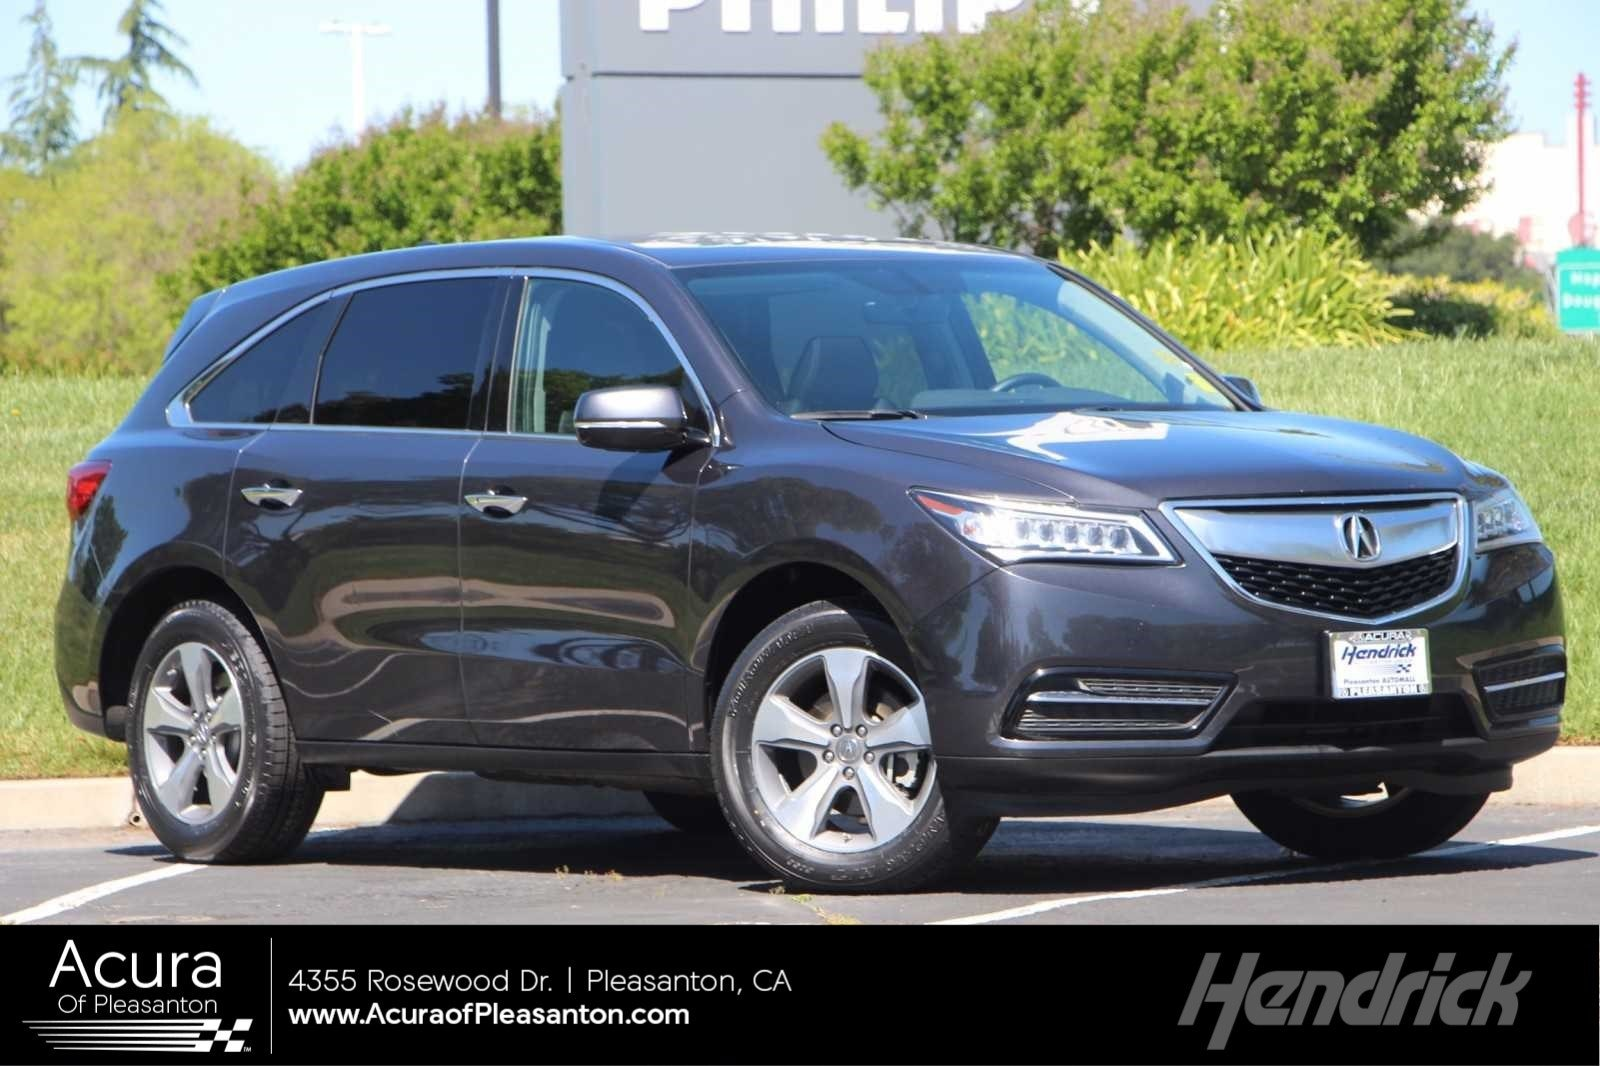 2016 Acura MDX 4DR FWD SUV